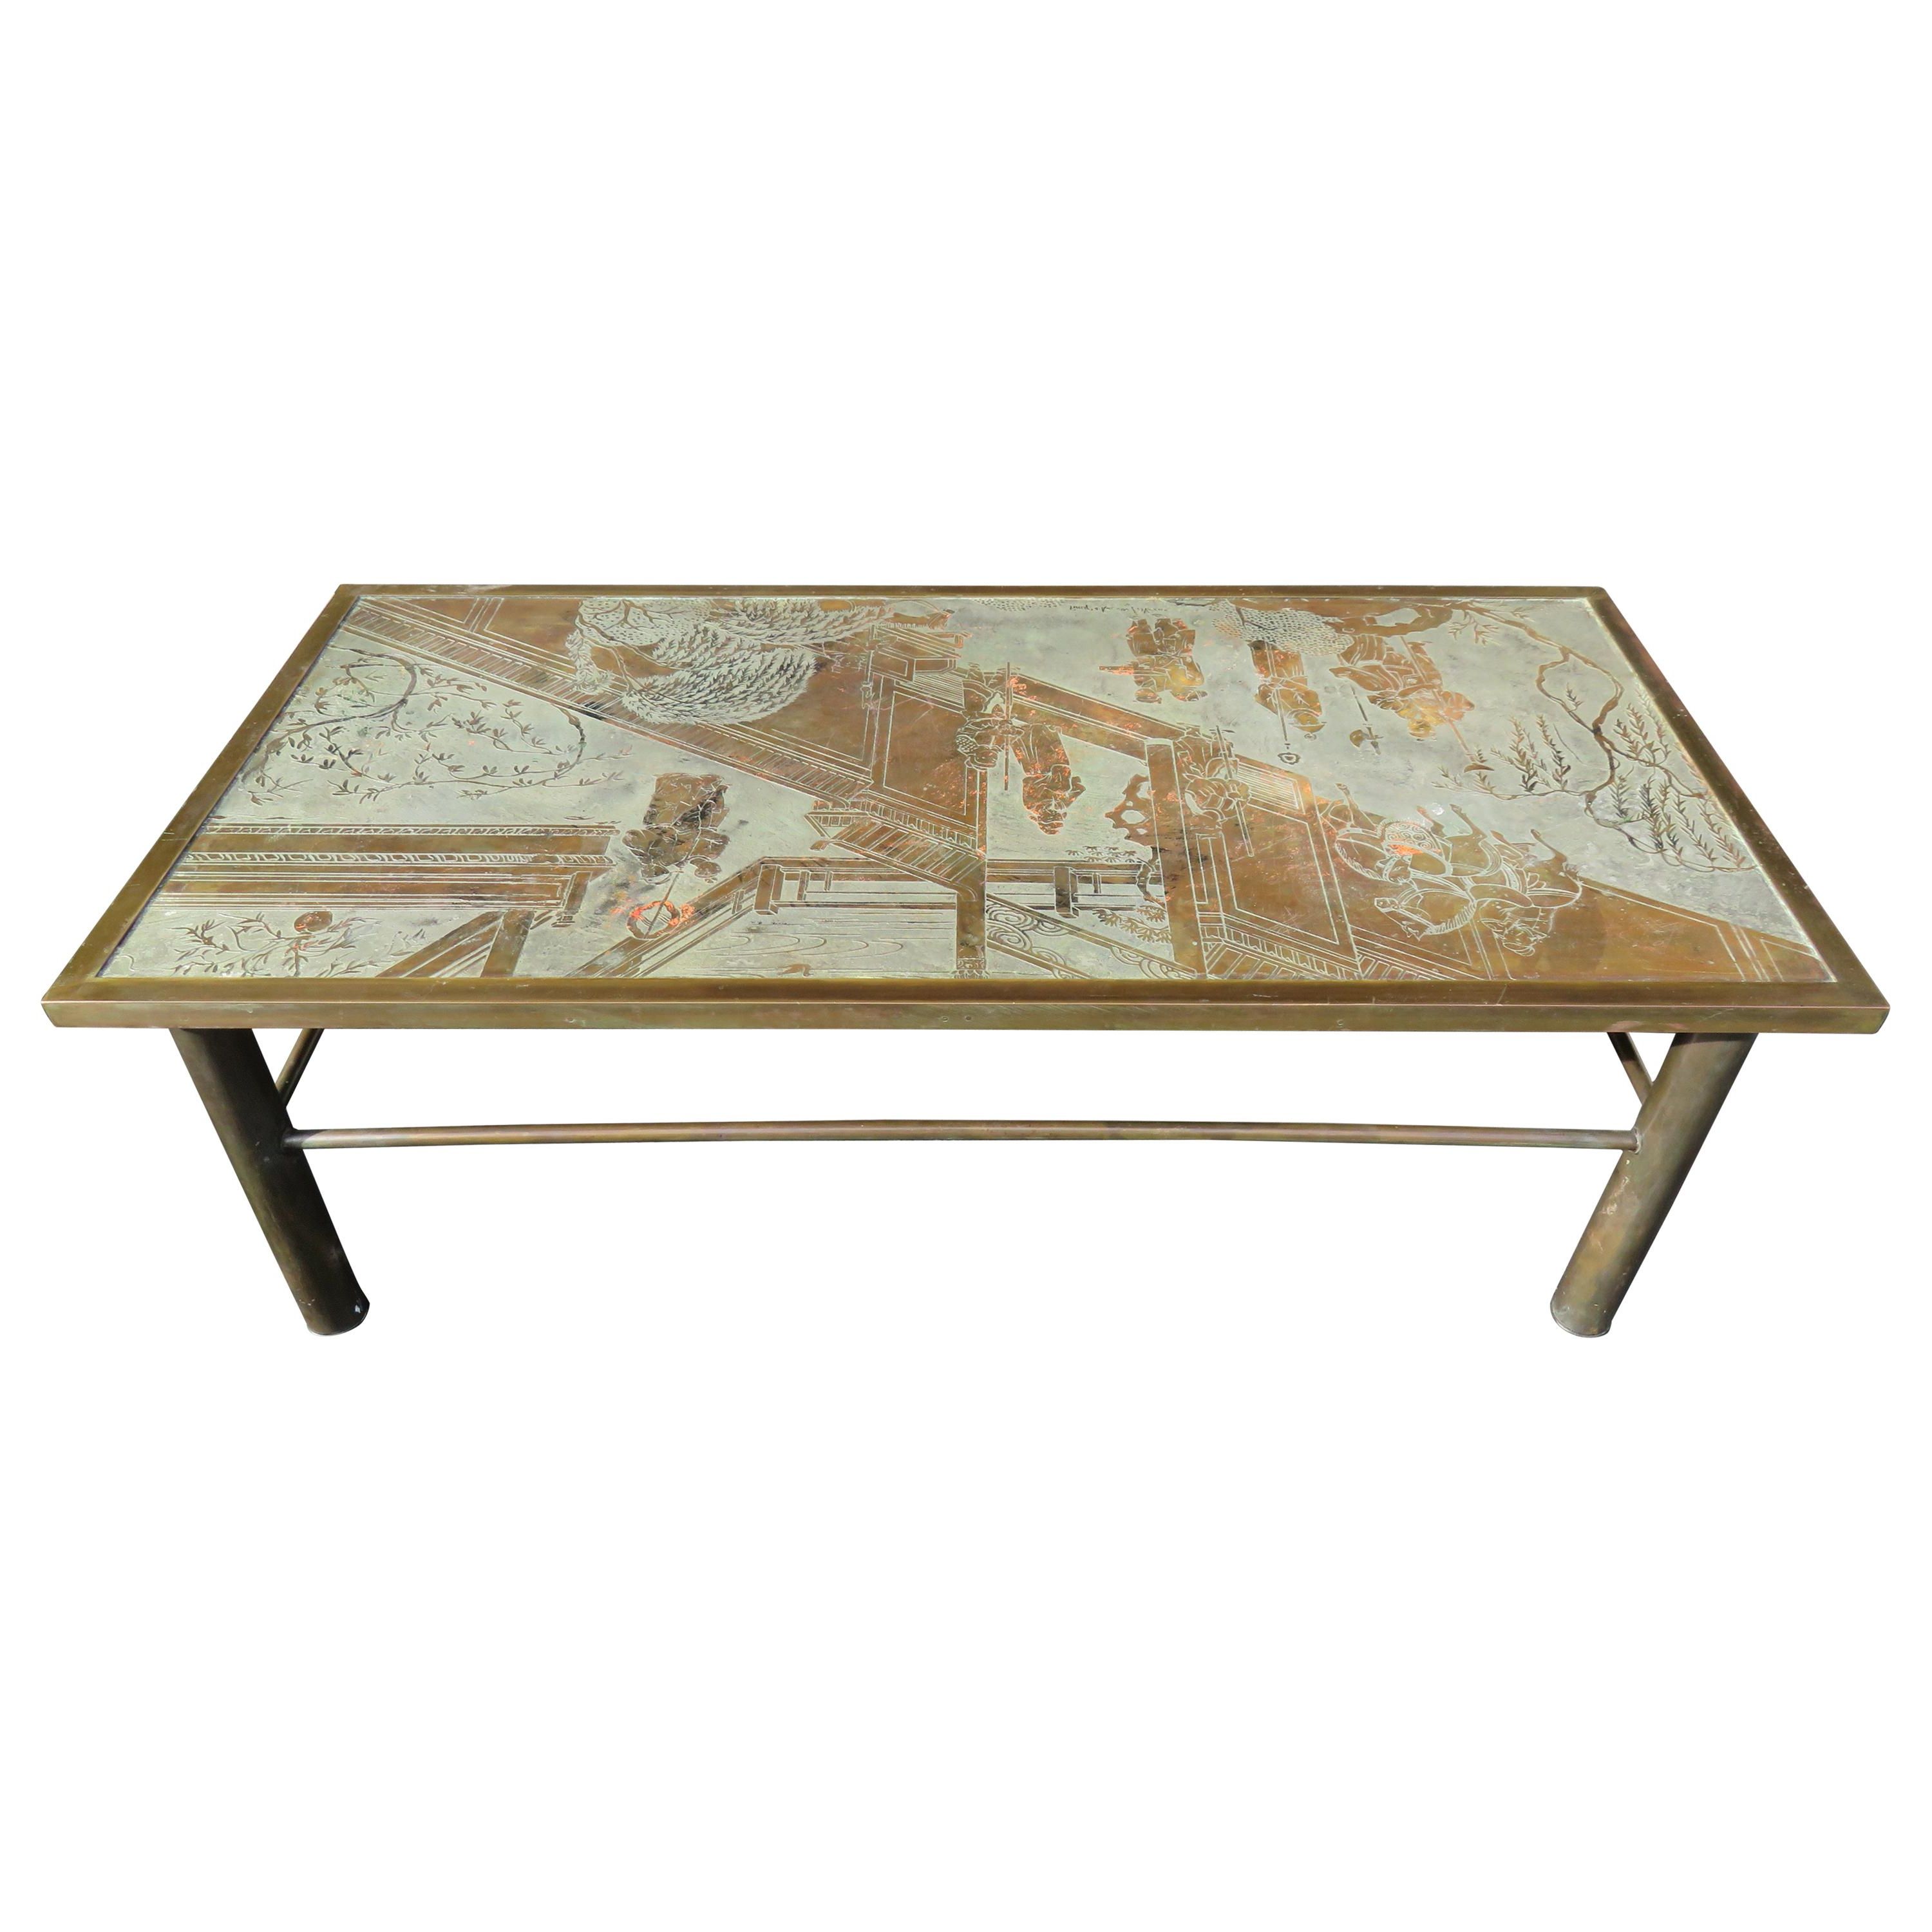 Philip And Kelvin Laverne Tables – 132 For Sale At 1Stdibs Regarding Phillip Brass Console Tables (View 10 of 20)